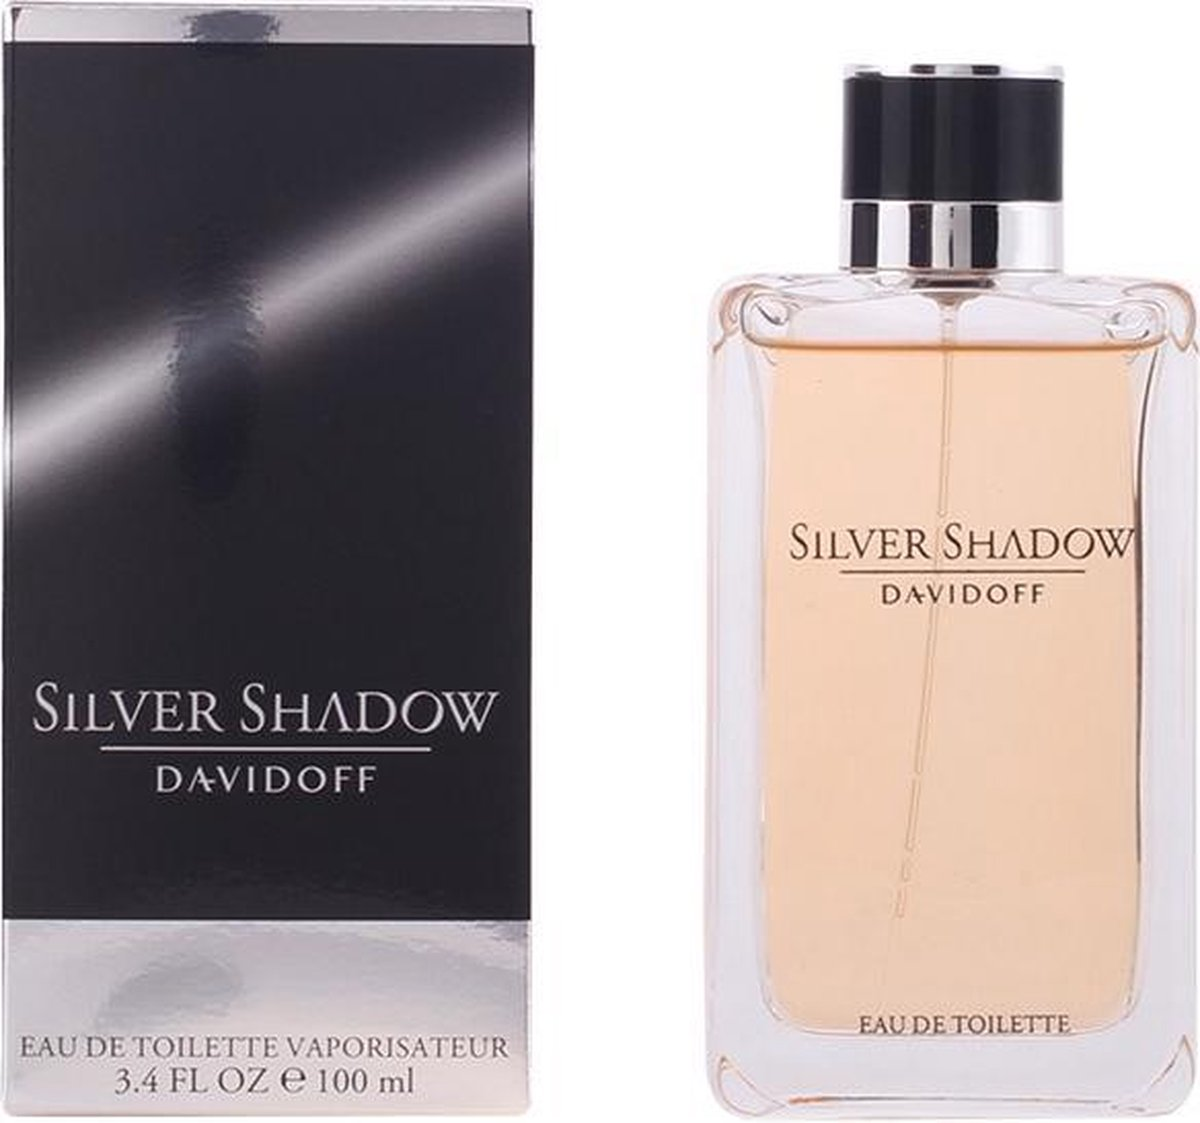 Davidoff Silver Shadow - 100 ml - Eau De Toilette